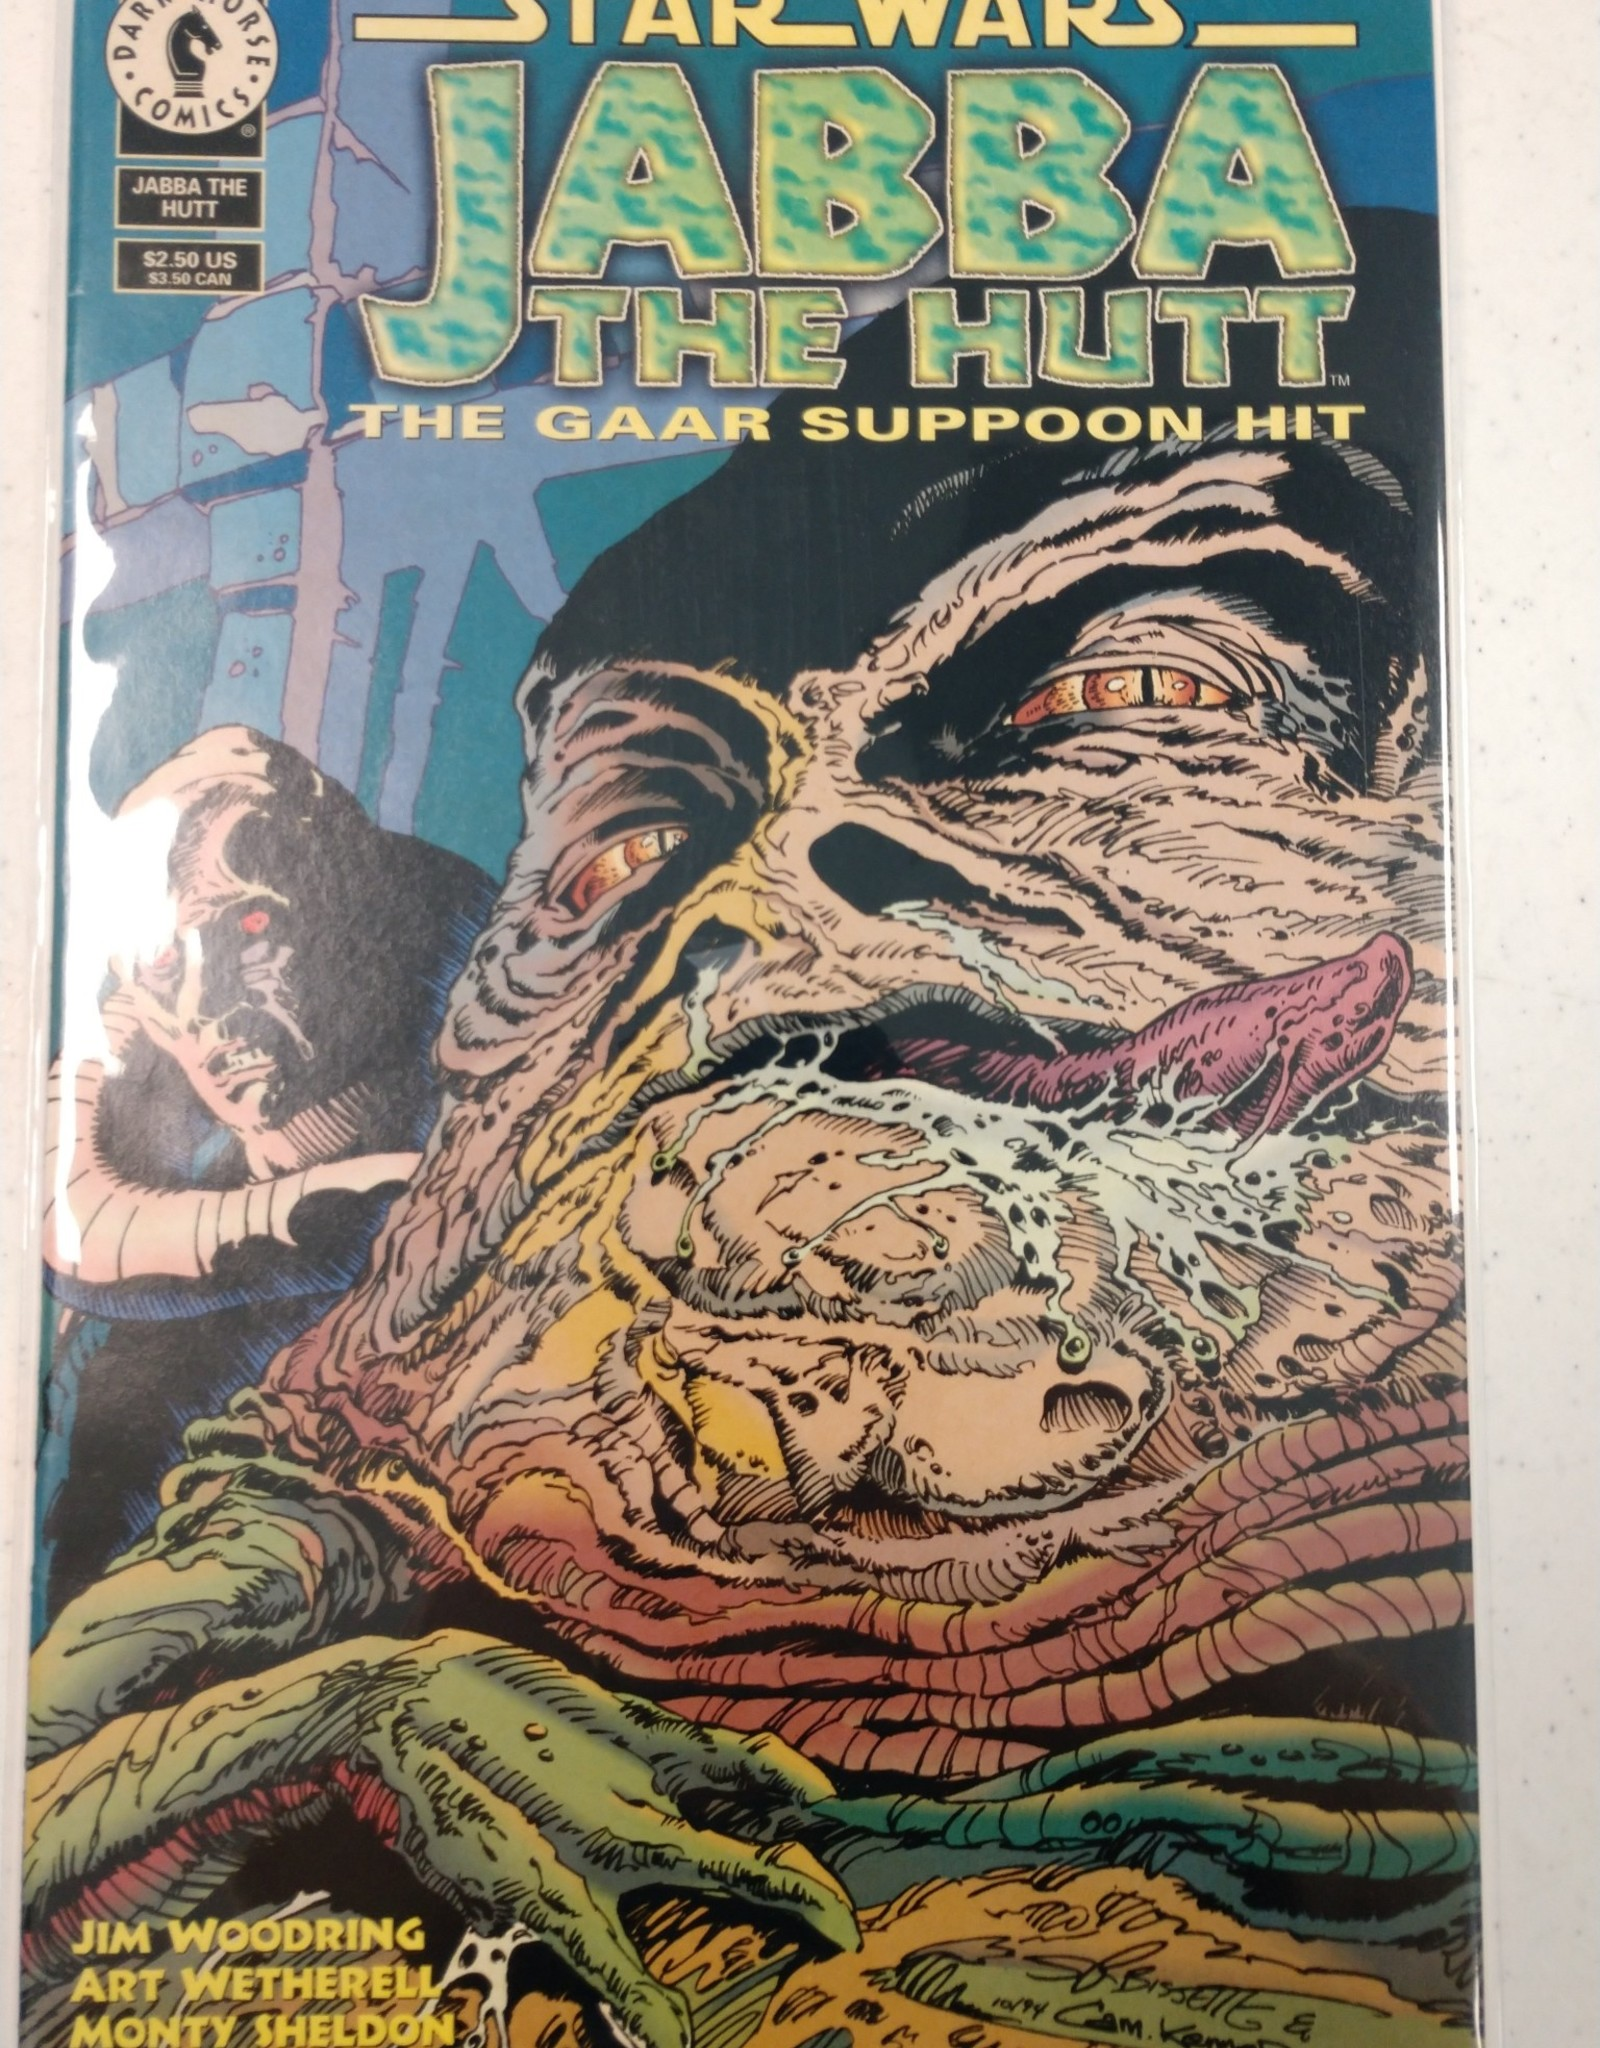 DARK HORSE COMICS Jabba The Hutt The Gaar Suppoon Hit